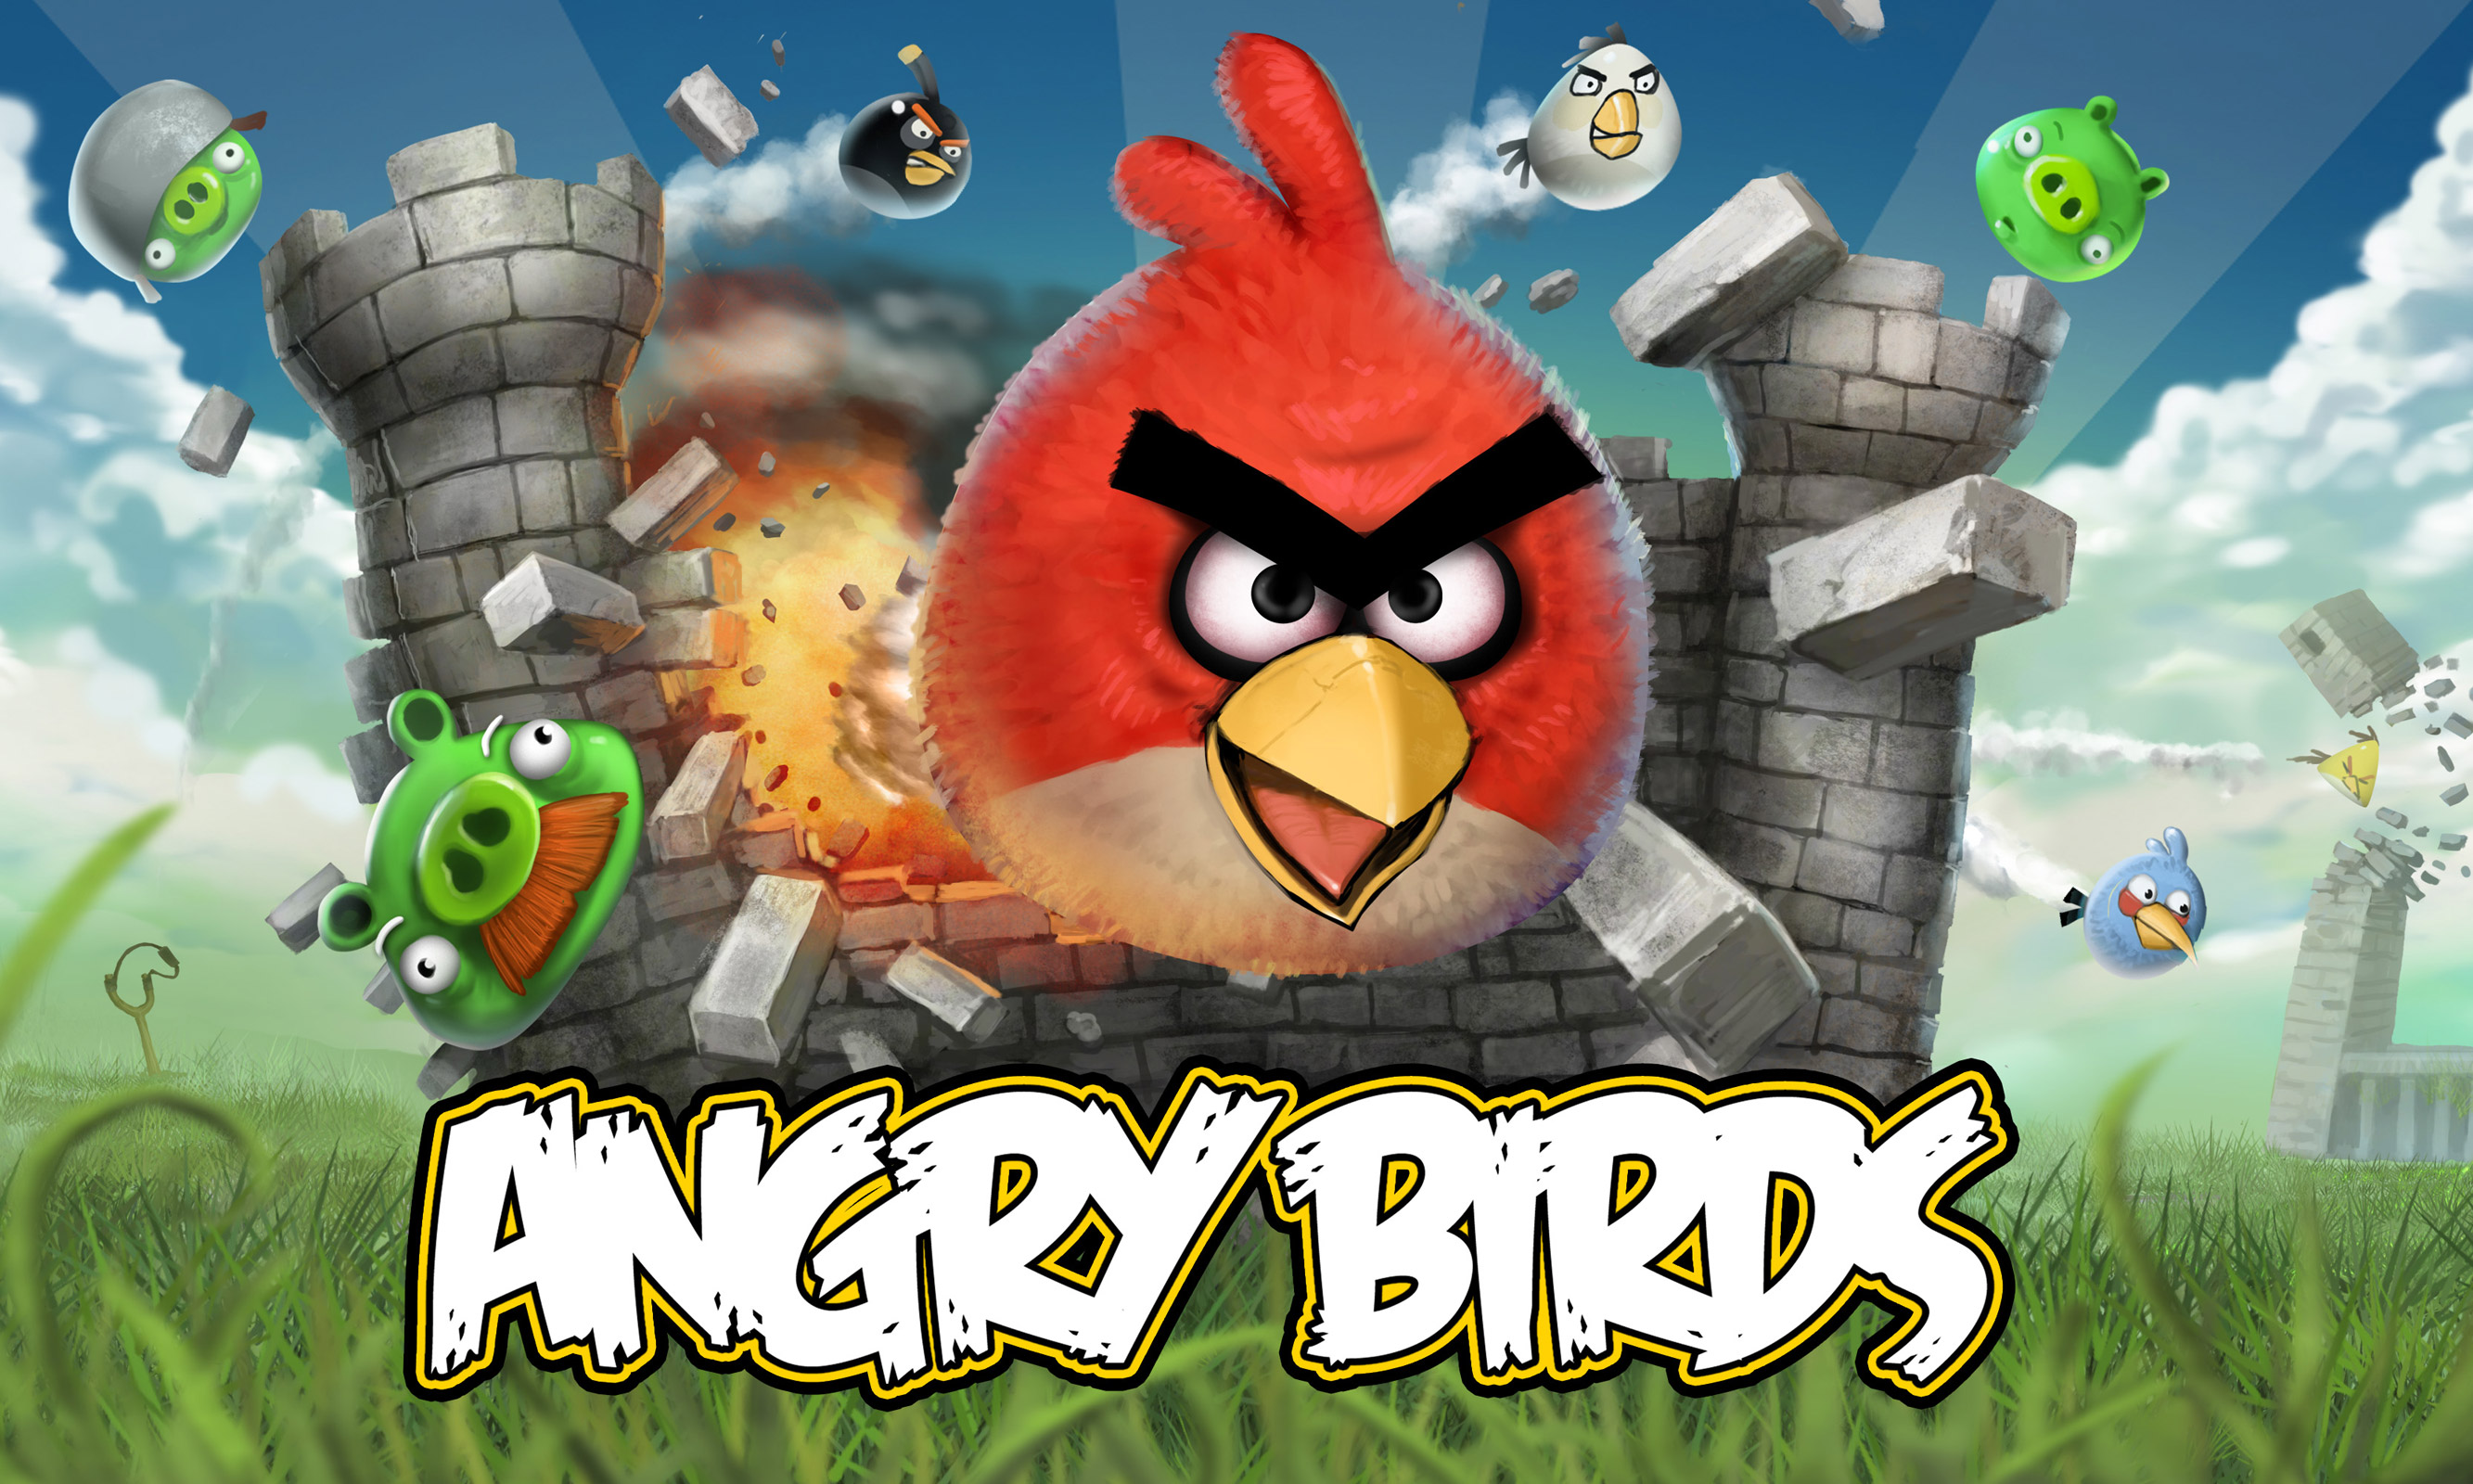 angry birds desktop wallpapers | angrybirdsnest